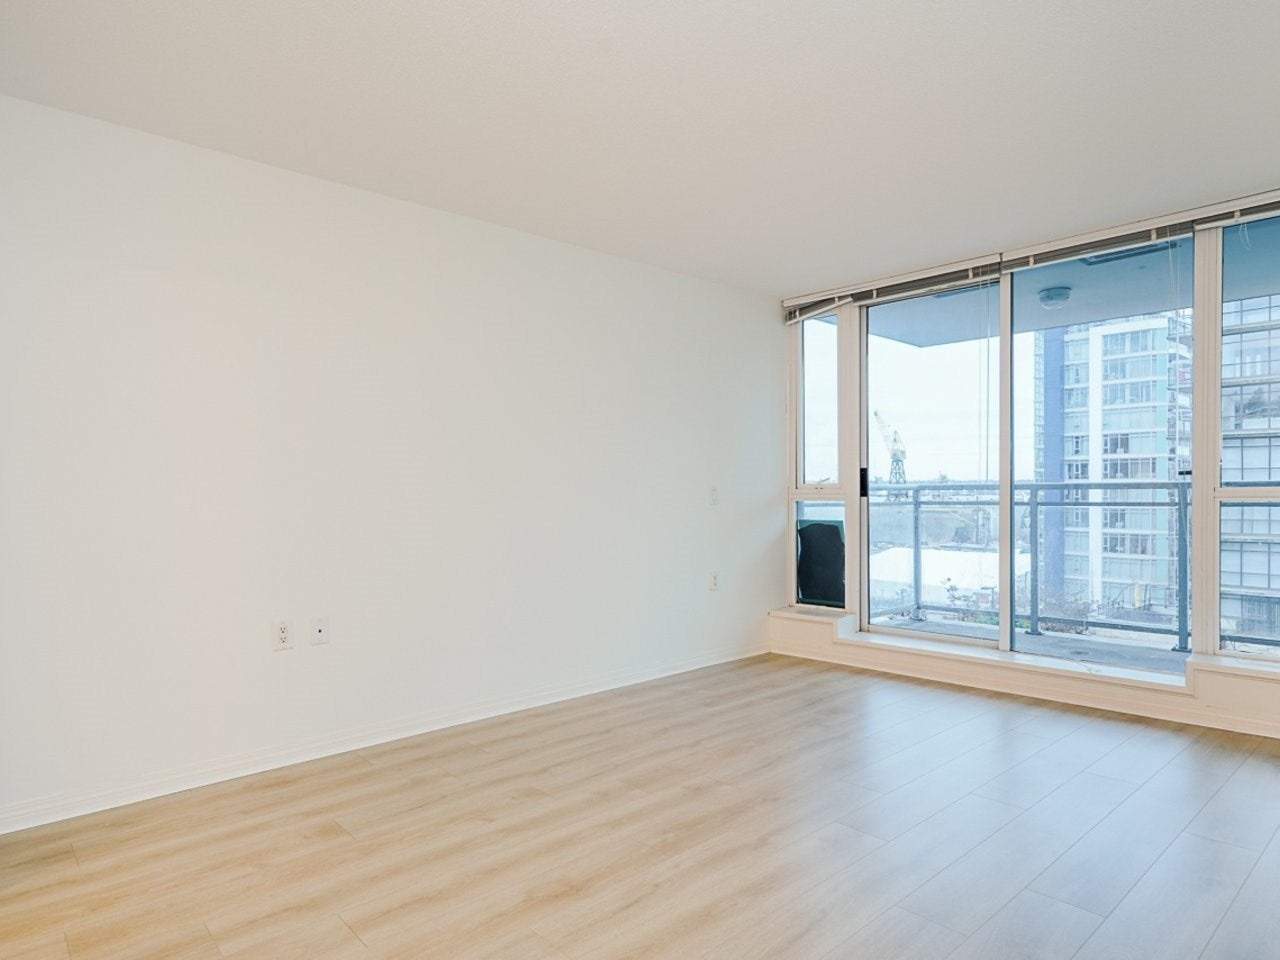 604 188 E ESPLANADE - Lower Lonsdale Apartment/Condo for sale, 2 Bedrooms (R2528391) - #19